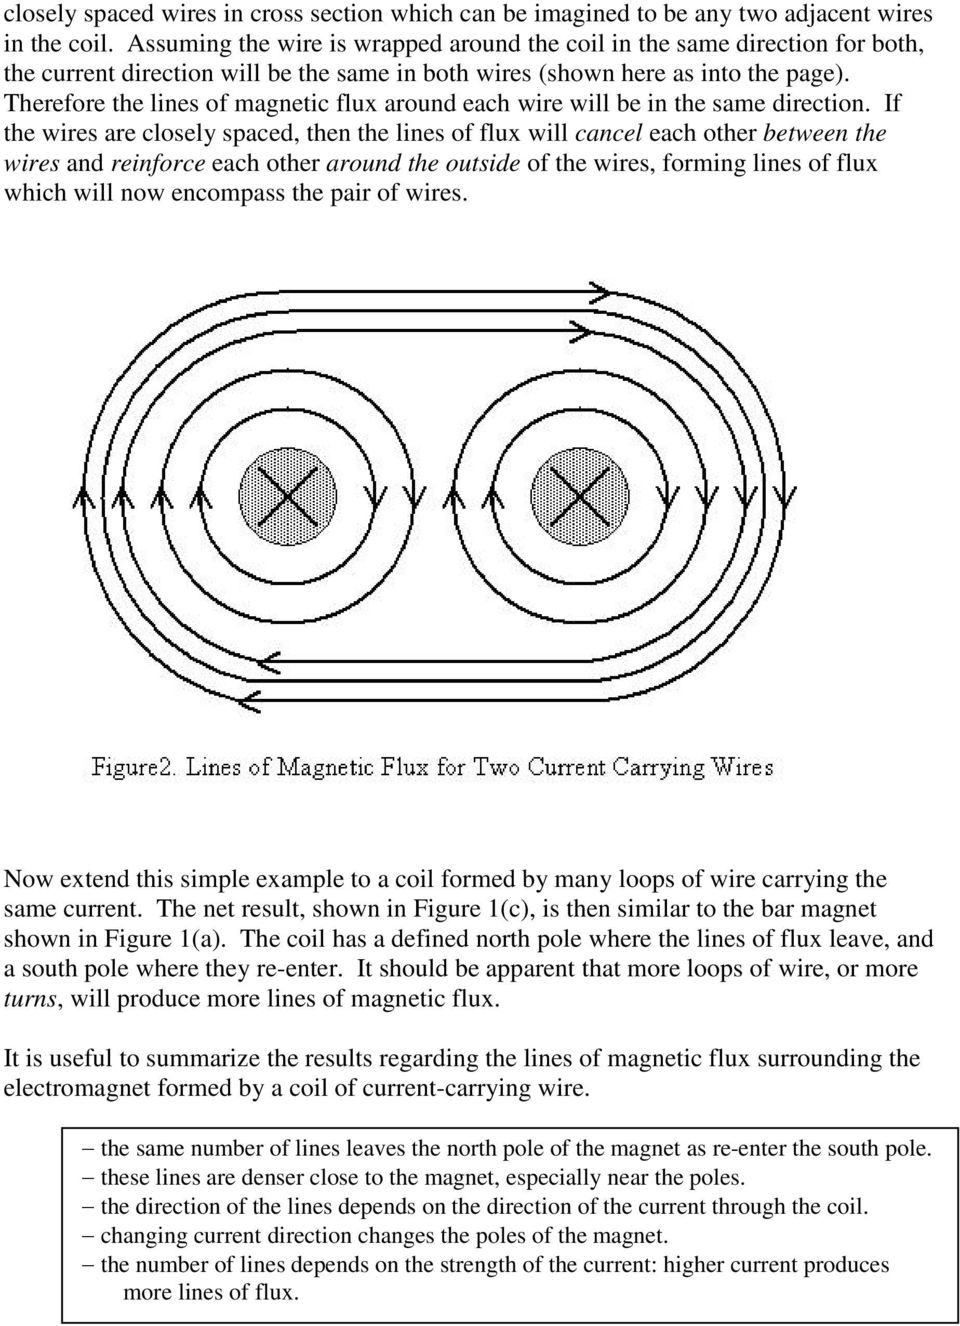 Linear Dc Motors Magnetic Flux Permanent Bar Magnets Pdf Velocity Roller Coaster Diagram Free Download Wiring Therefore The Lines Of Around Each Wire Will Be In Same Direction